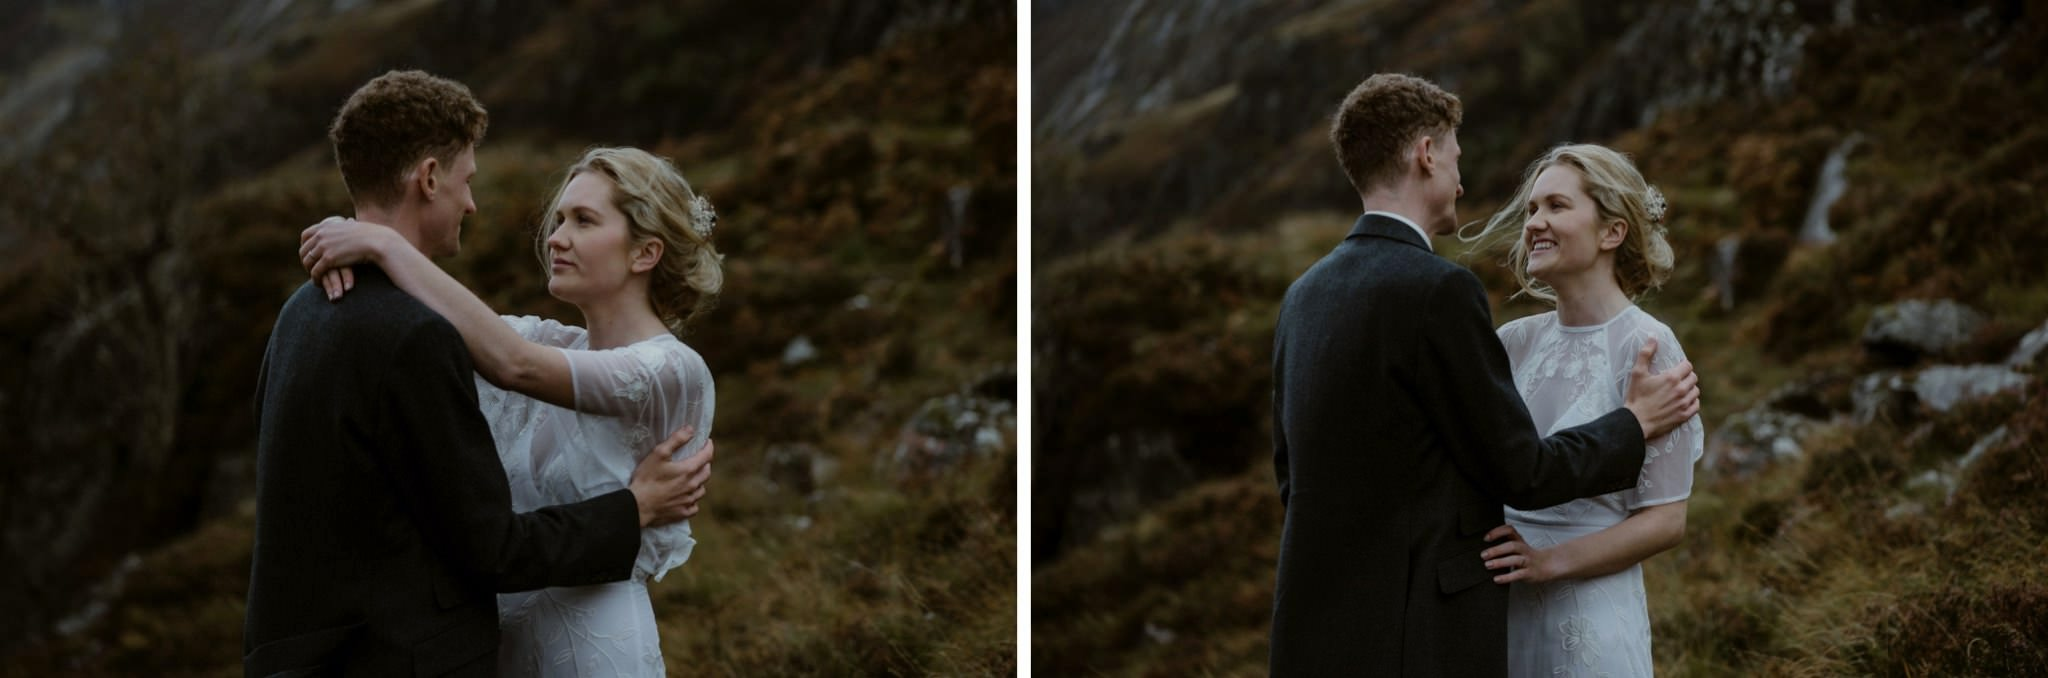 Bride and groom embrace during their wedding for two in Scotland